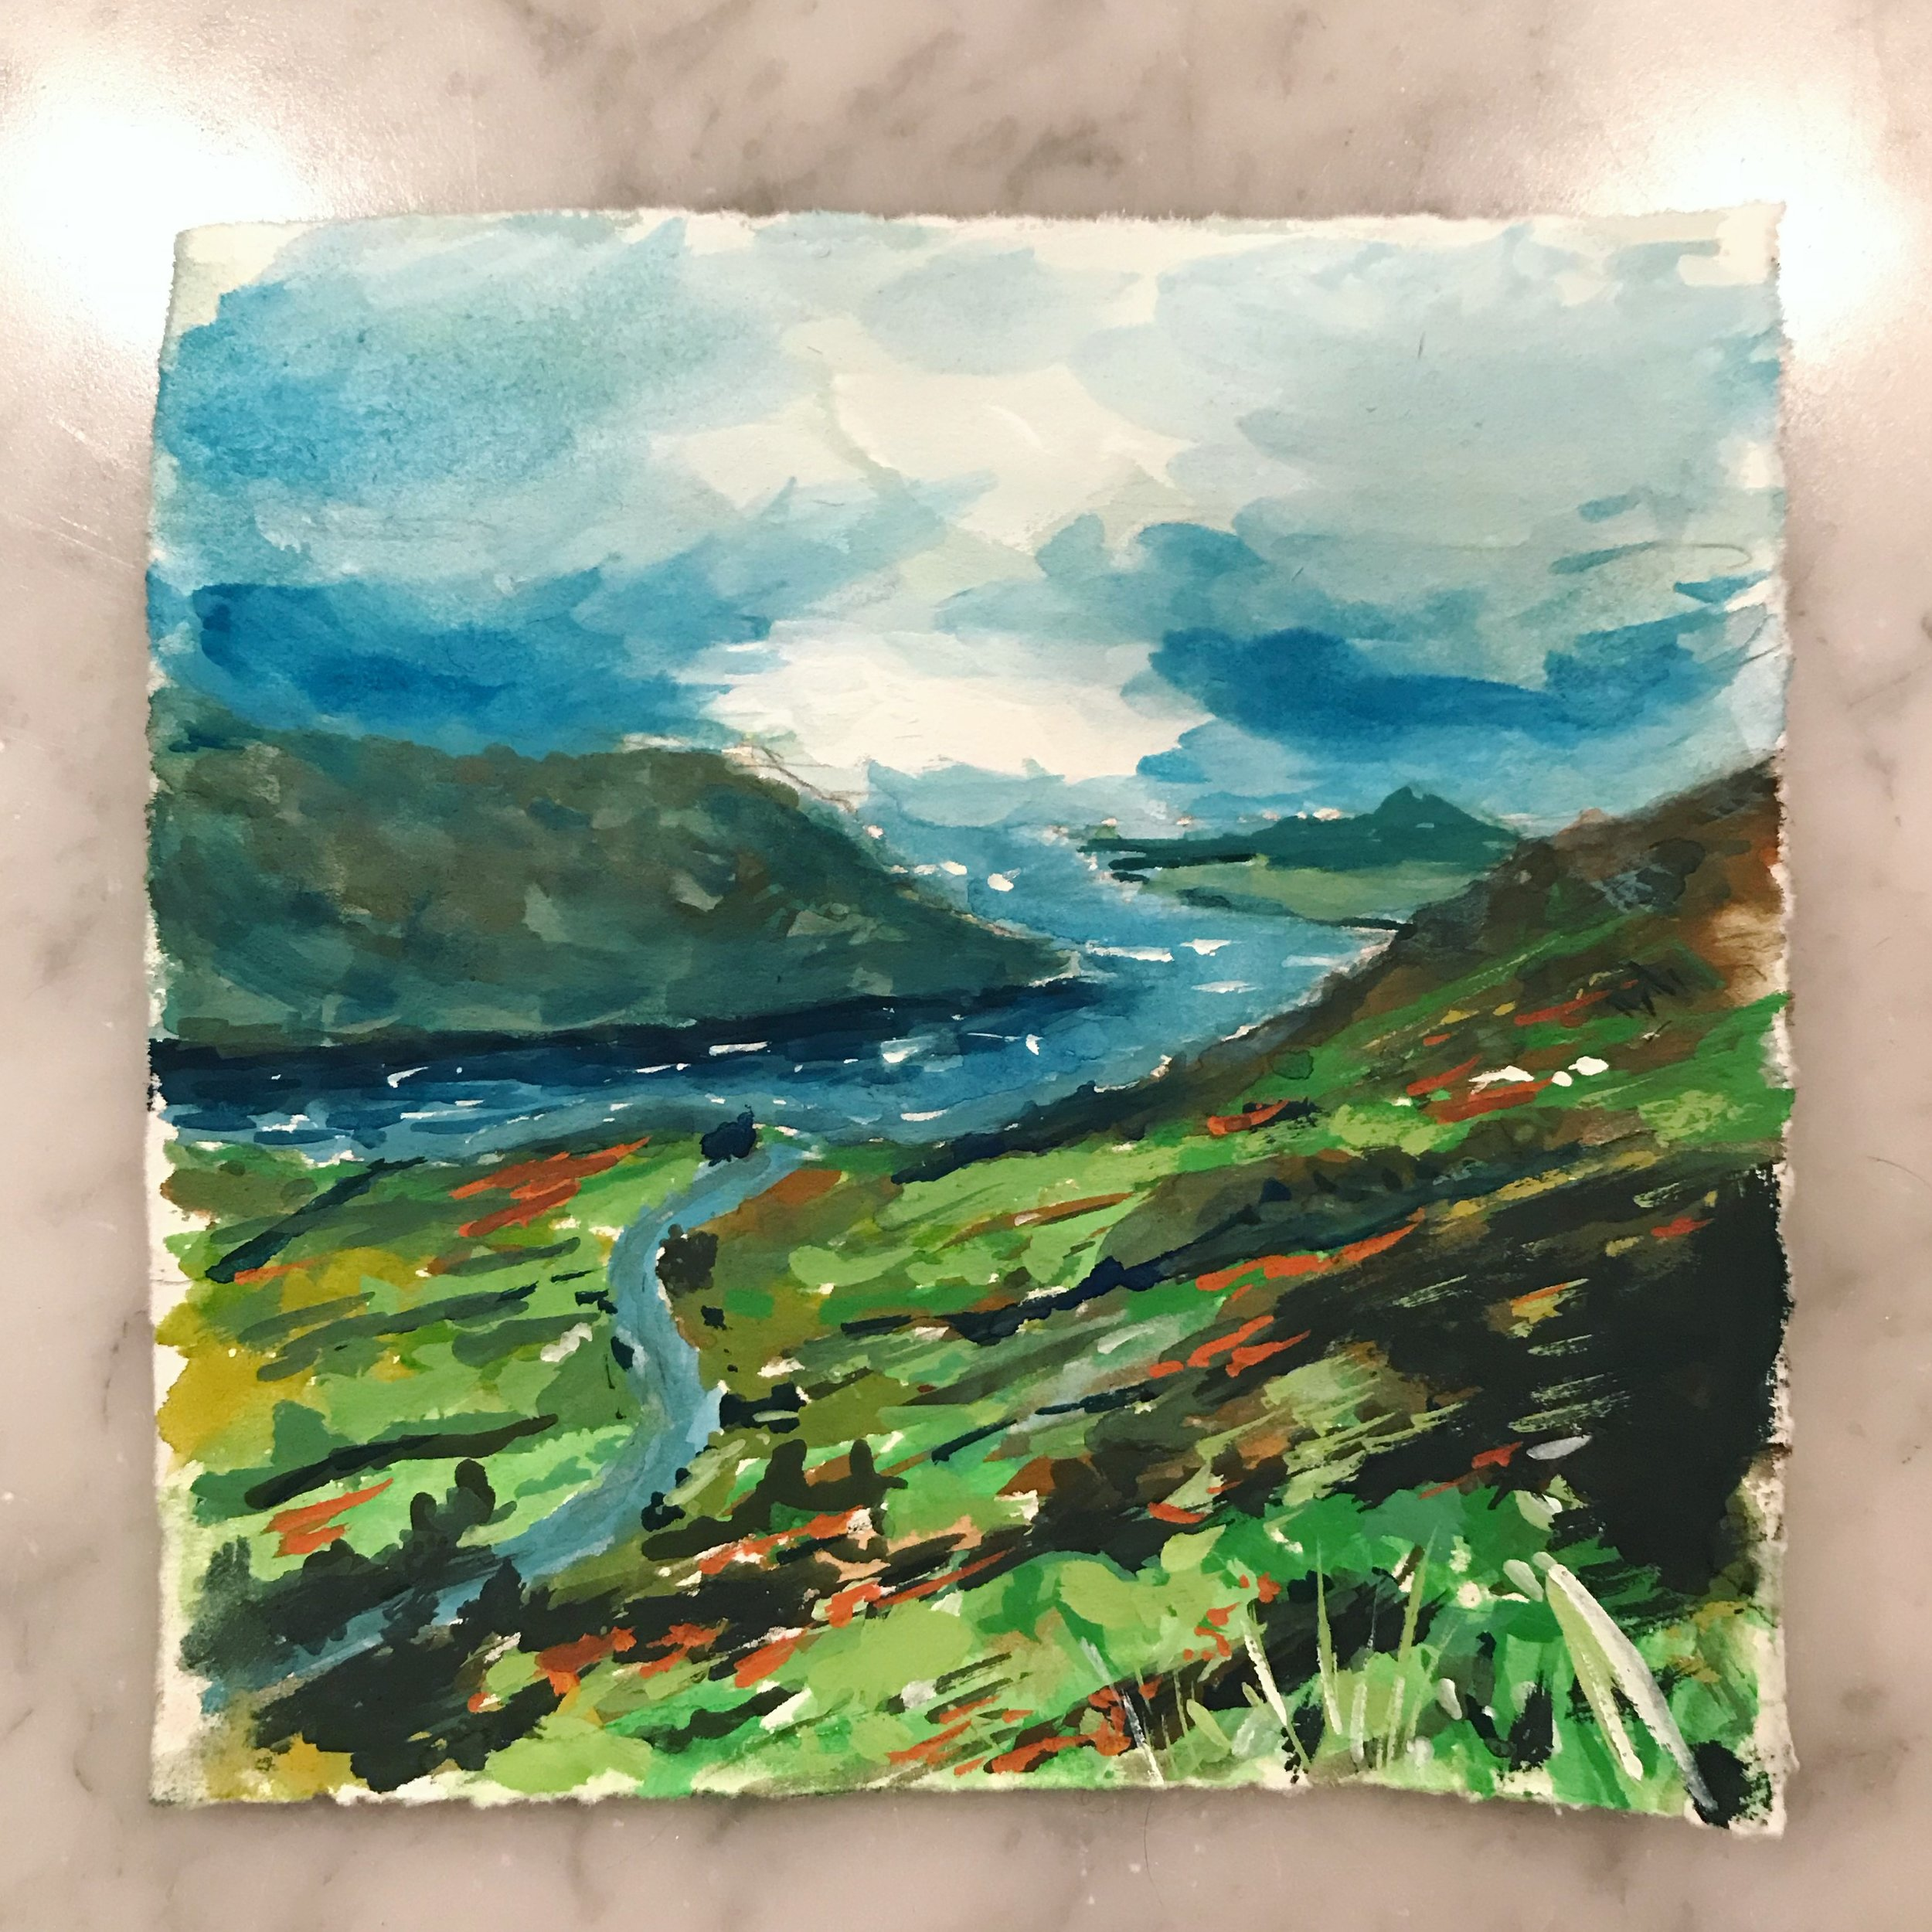 My first gouache painting